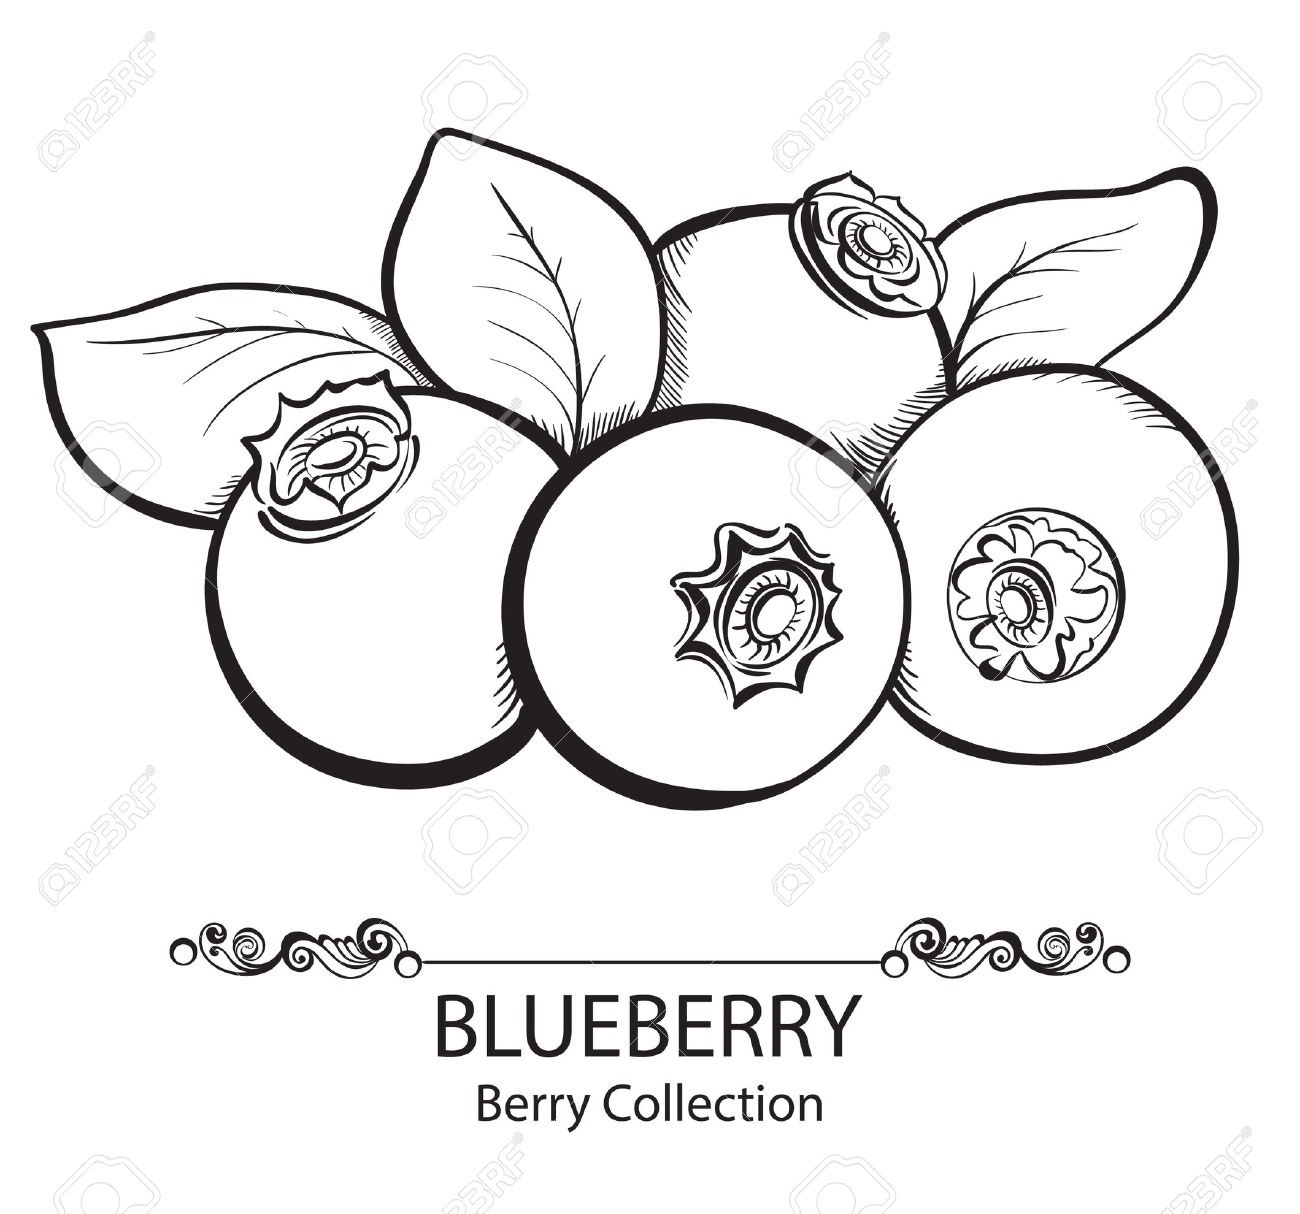 Blueberry clipart outline. Black and white letters